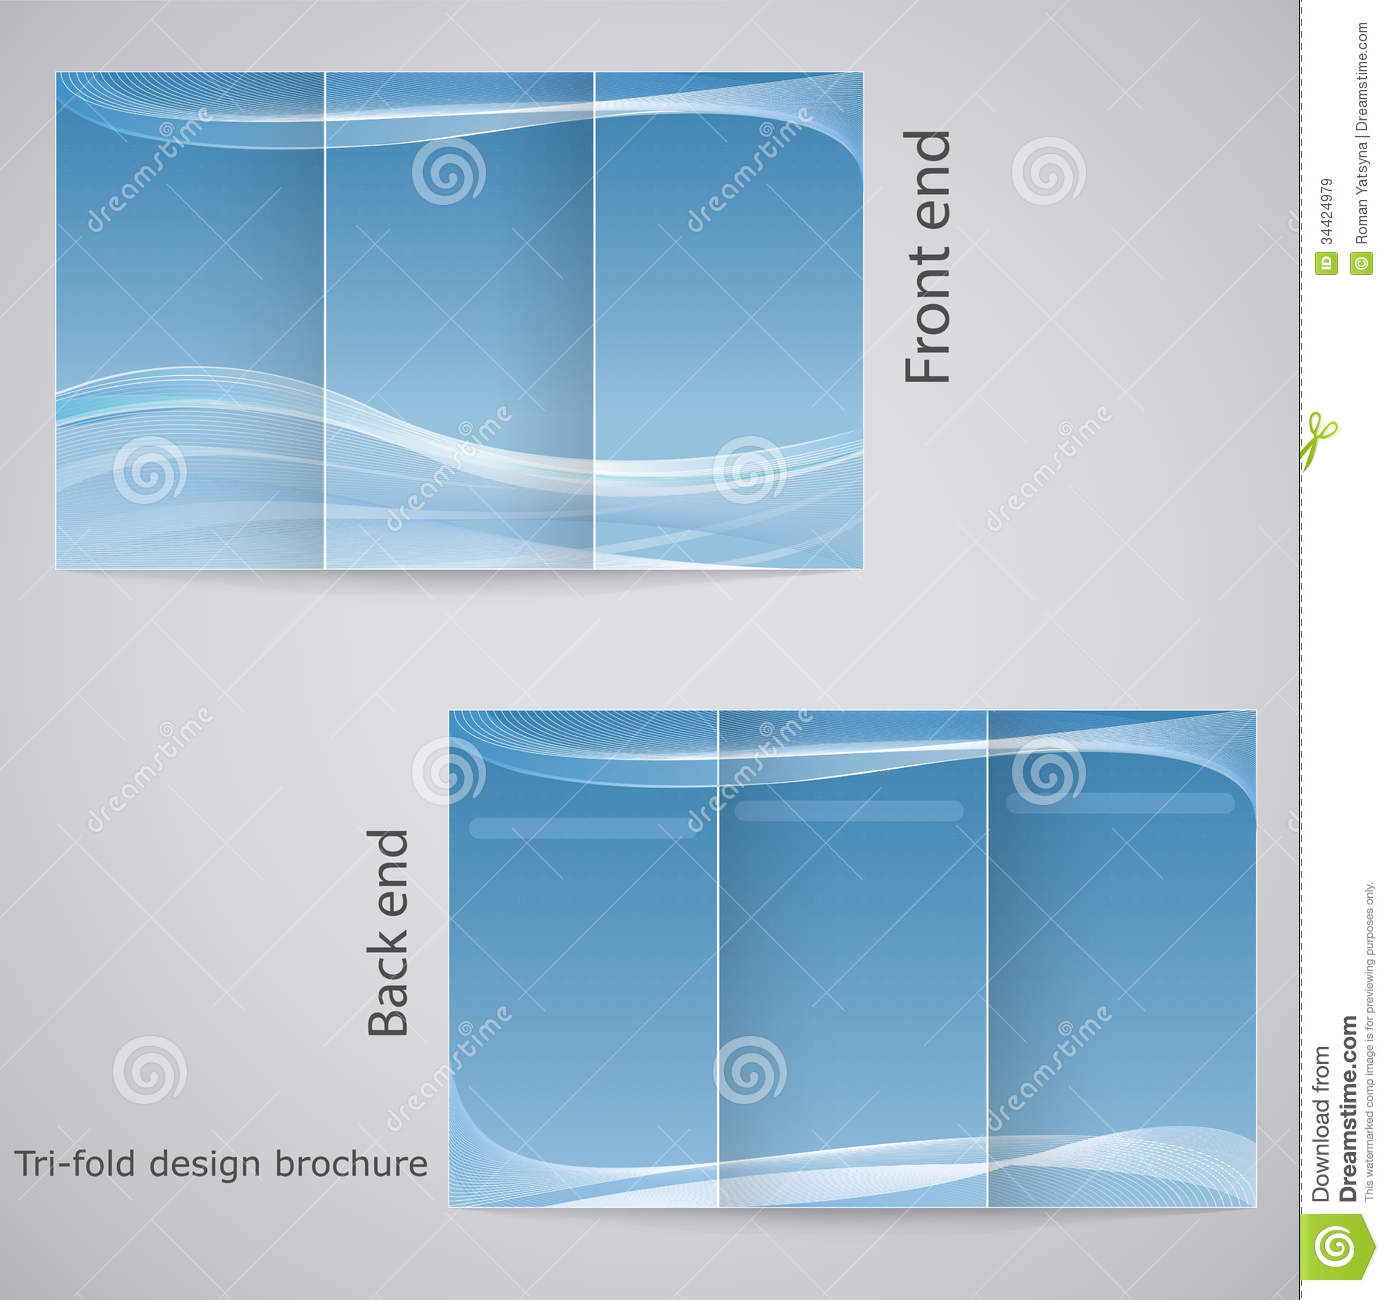 17 tri fold brochure design templates images tri fold for Tri fold brochure template photoshop free